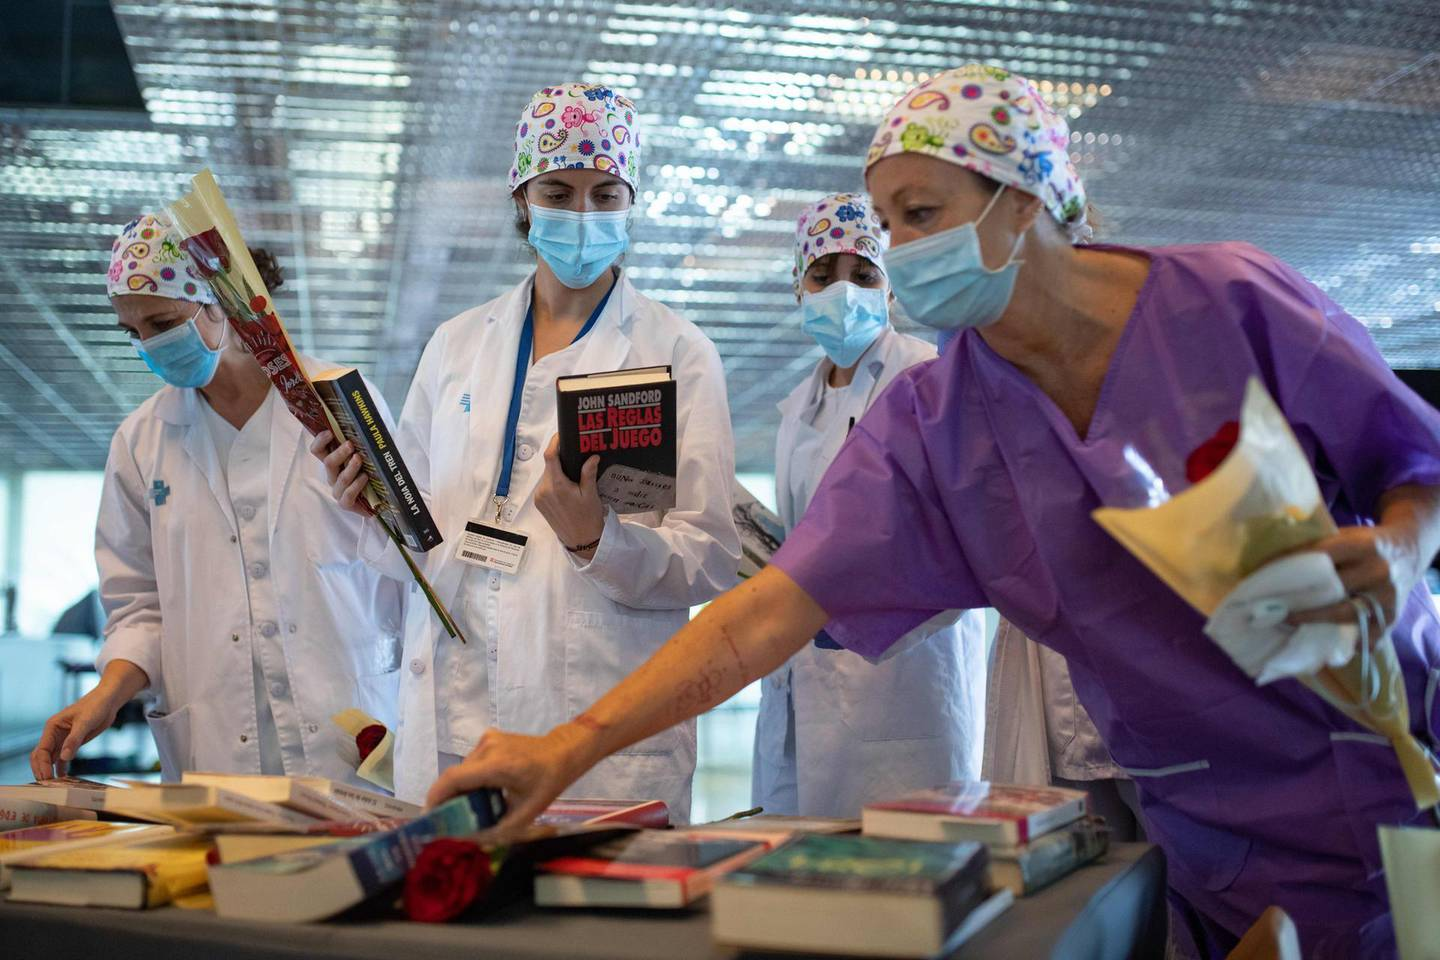 """Healthcare workers holding roses pick up books donated to the field hospital of Hotel Catalonia Fira in Barcelona on April 23, 2020 during the Sant Jordi festivities marking Saint George's day. Traditionally men give women roses and women give men a book to celebrate the Catalan holiday also know as """"The Day of the Rose"""" or """"The Day of the Book"""". Spain said 440 people died in the past 24 hours from the new coronavirus, a slight increase for the third day running, bringing the overall death toll to 22,157. / AFP / Josep LAGO"""